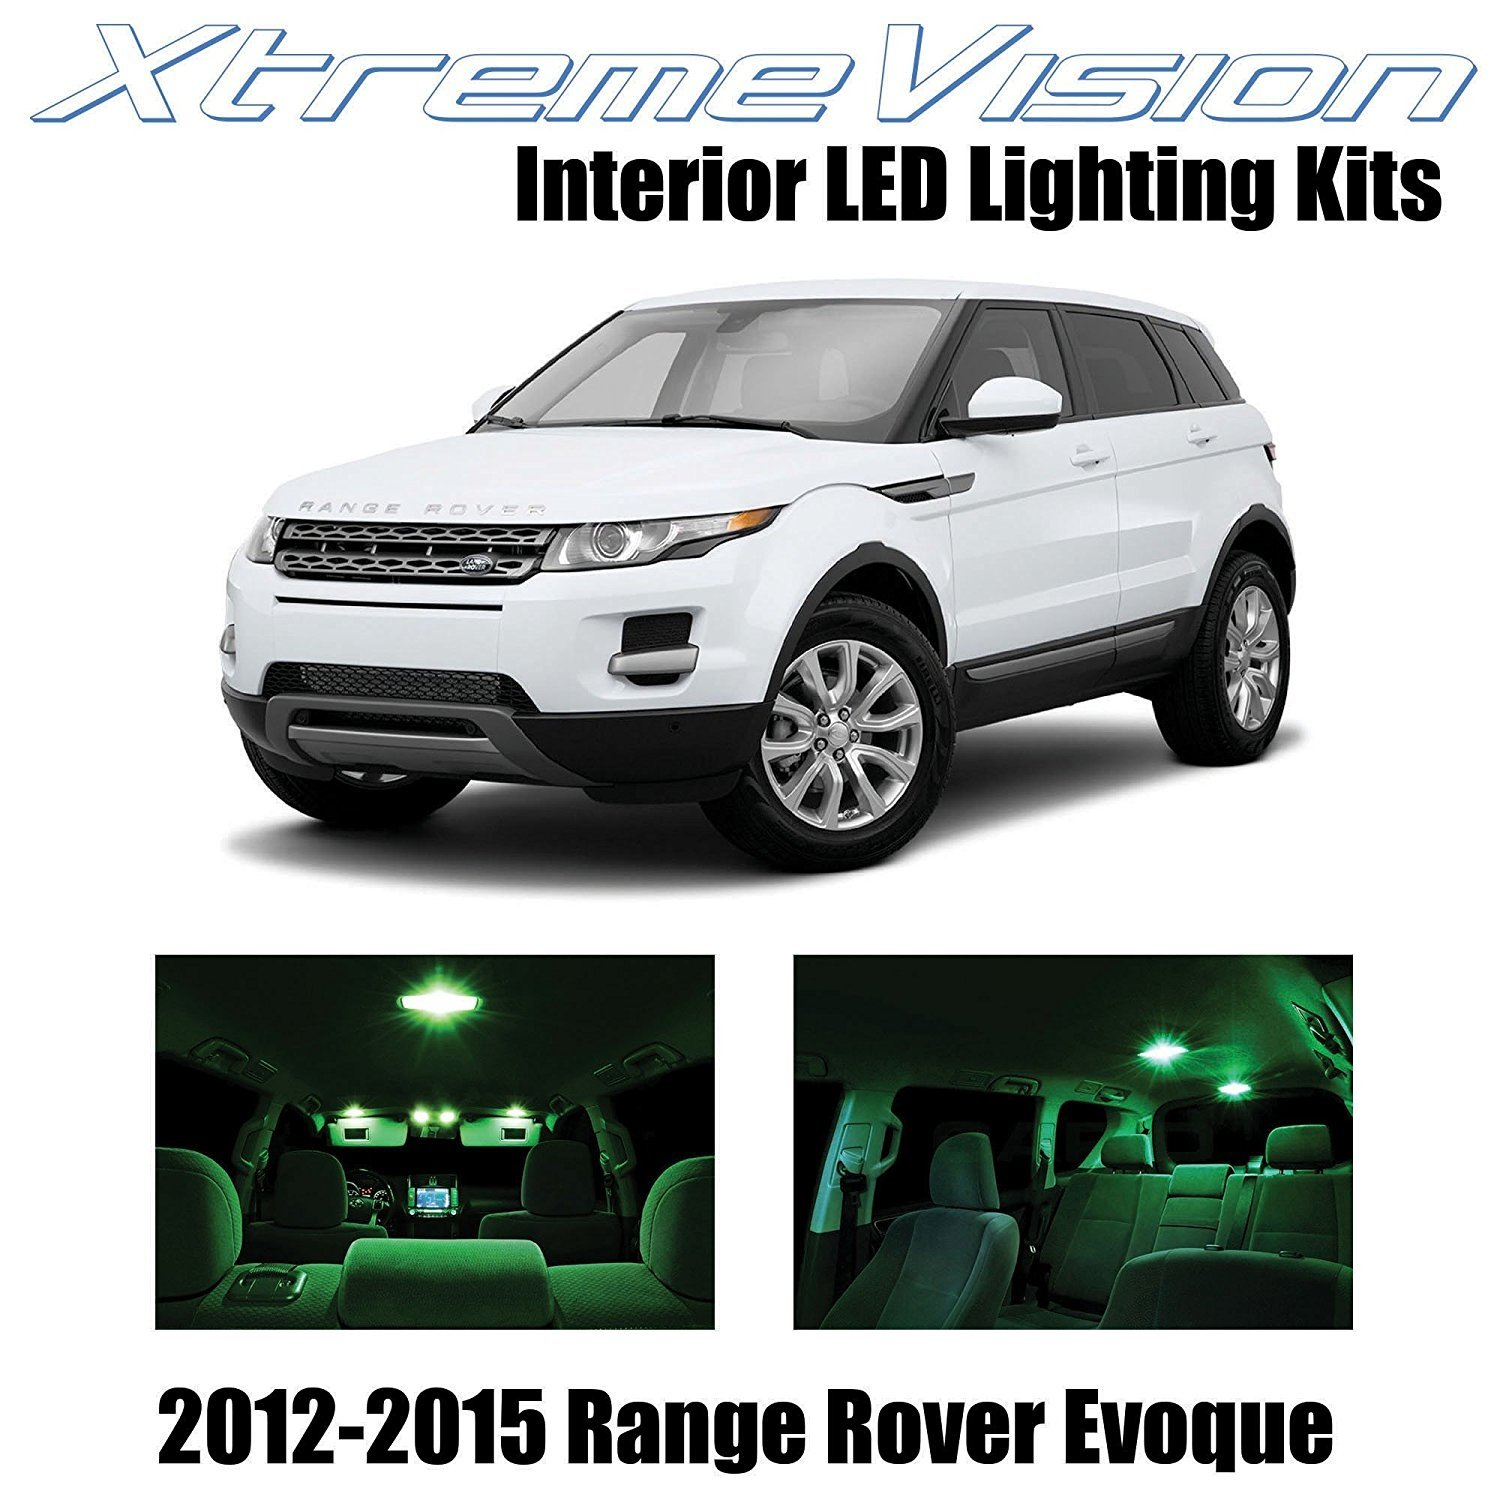 XtremeVision LED for Land Rover Range Rover Evoque SUV 2012-2015 (9 Pieces) Green Premium Interior LED Kit Package + Installation Tool